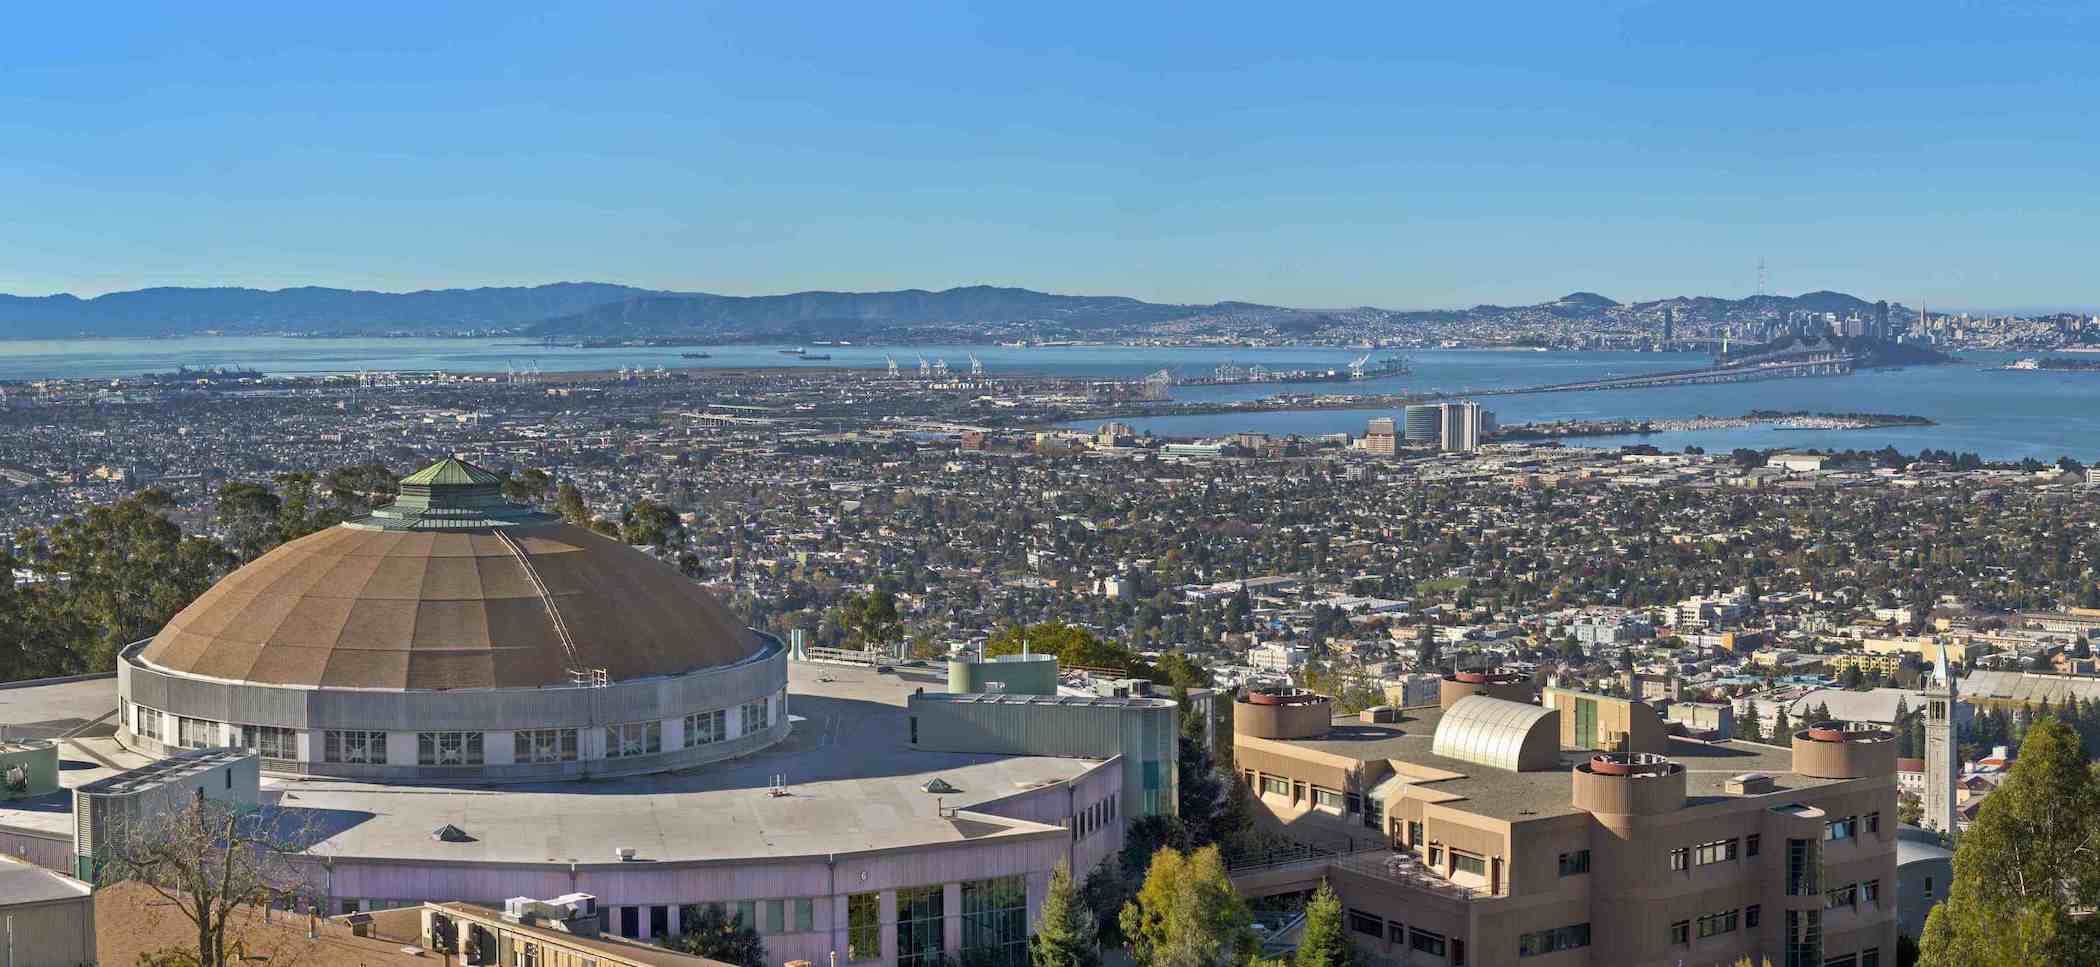 View of Berkeley from the Lawrence Berkeley National Laboratory